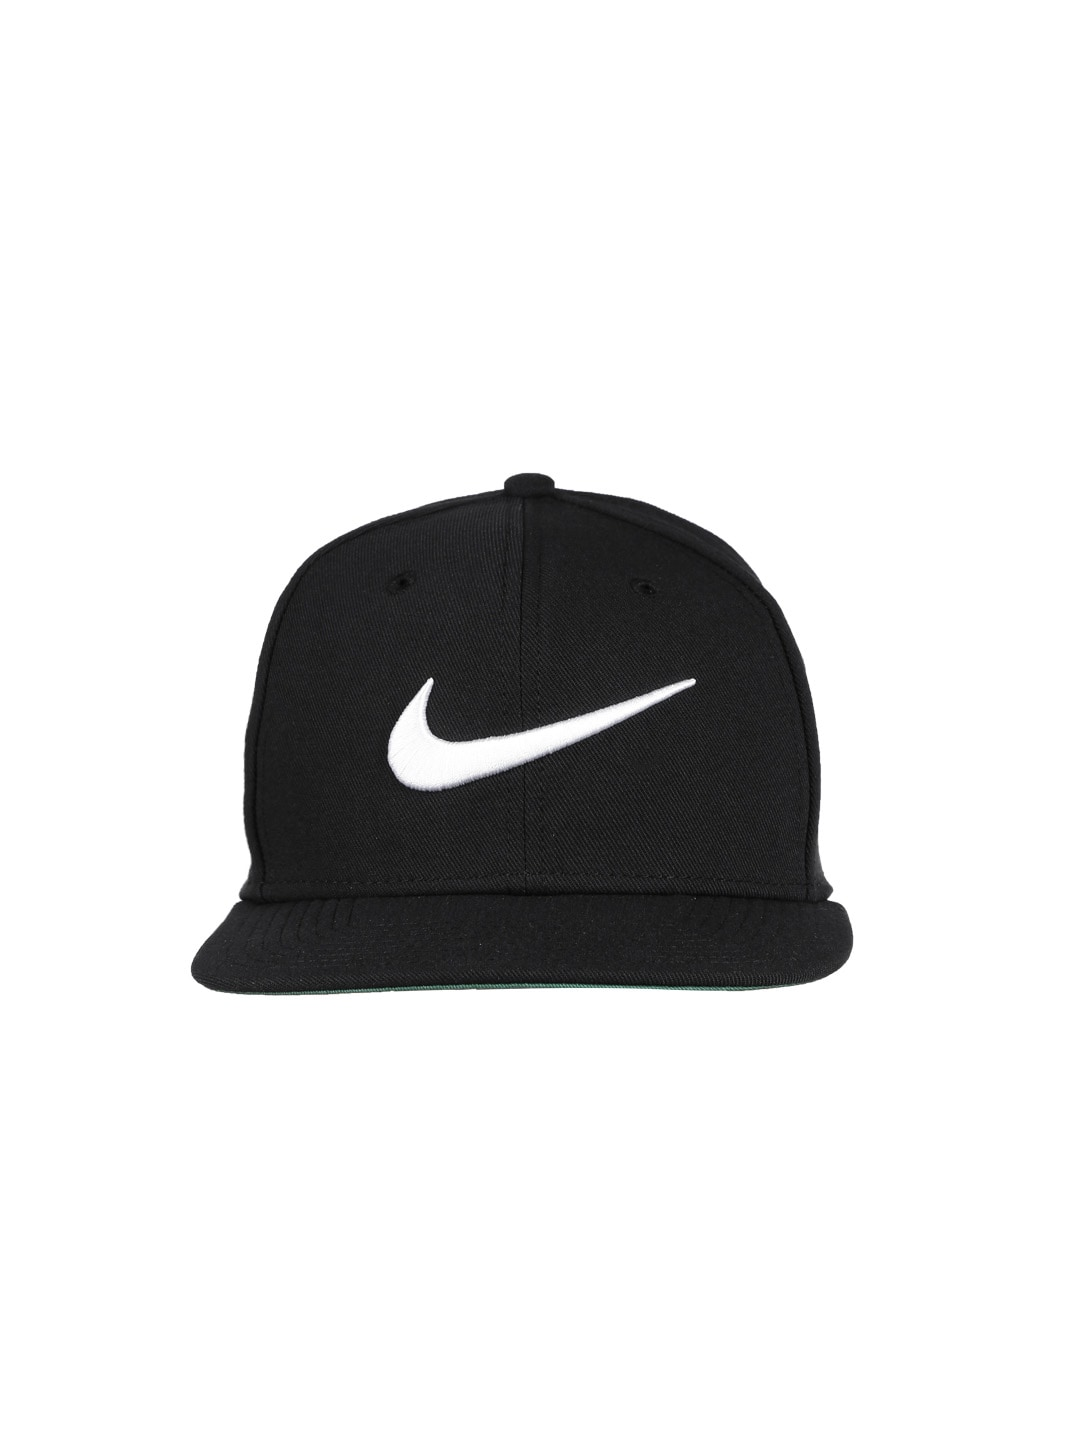 Nike Cap - Buy Nike Cap online in India 386aef9f87b